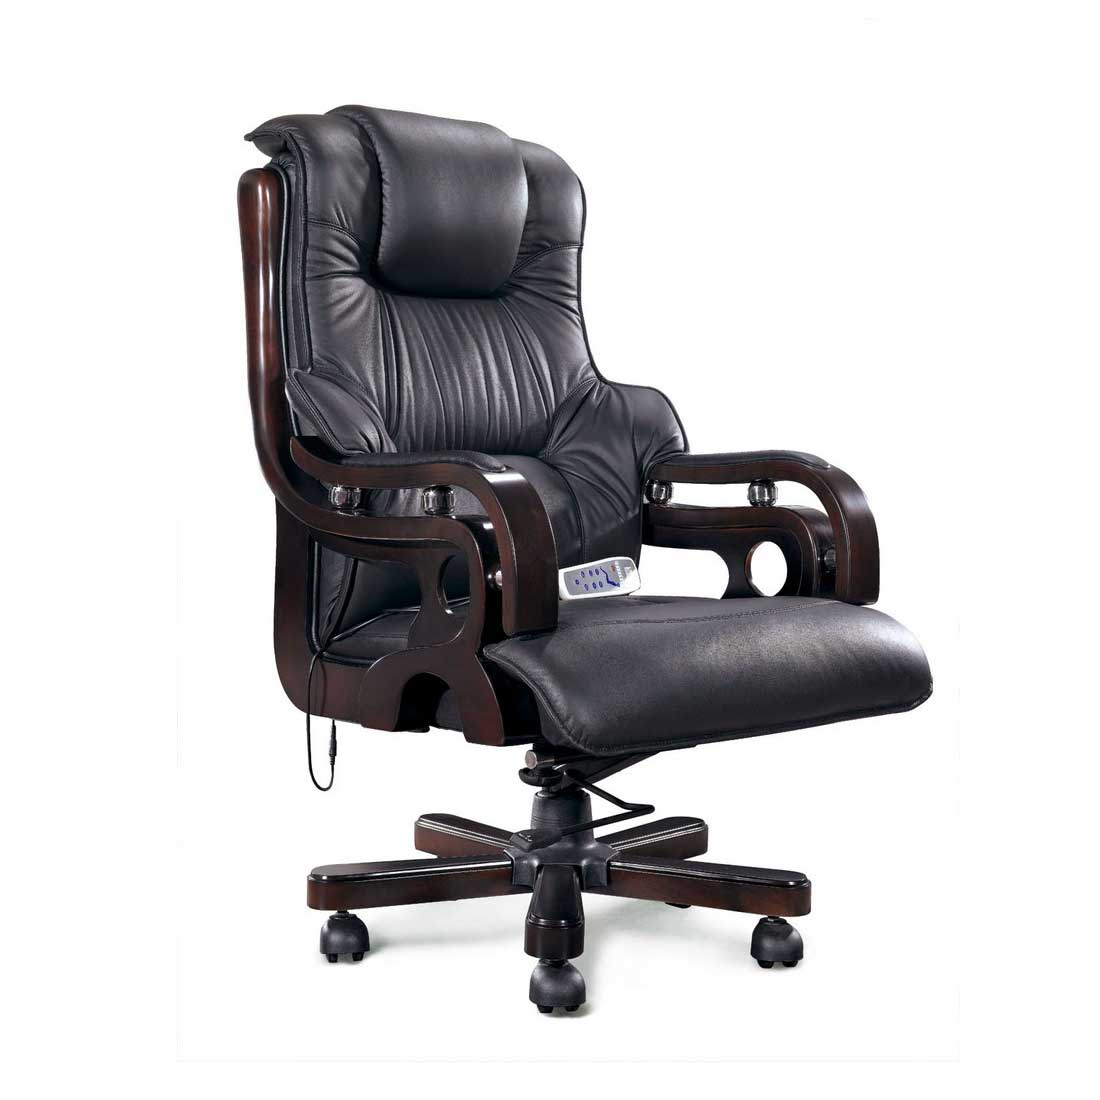 Executive Office Furniture: High End Office Chairs For Elegant Design